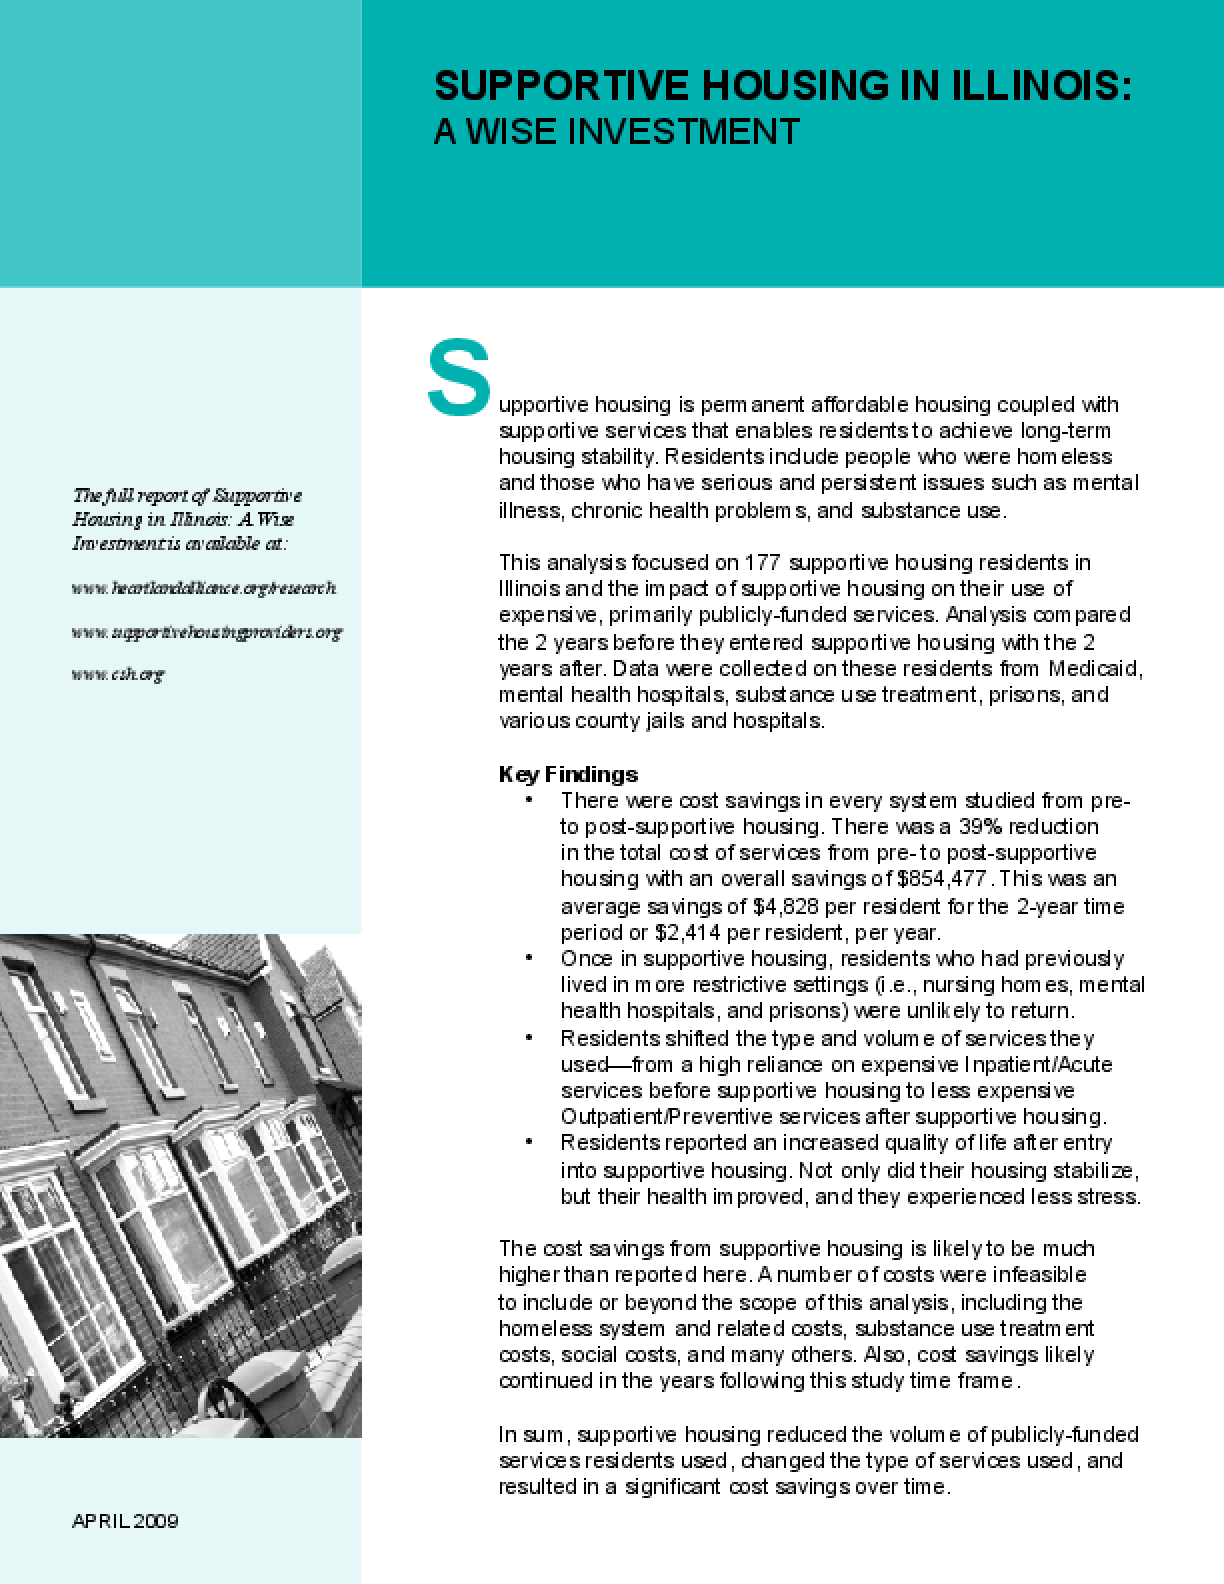 Supportive Housing in Illinois: A Wise Investment, Executive Summary